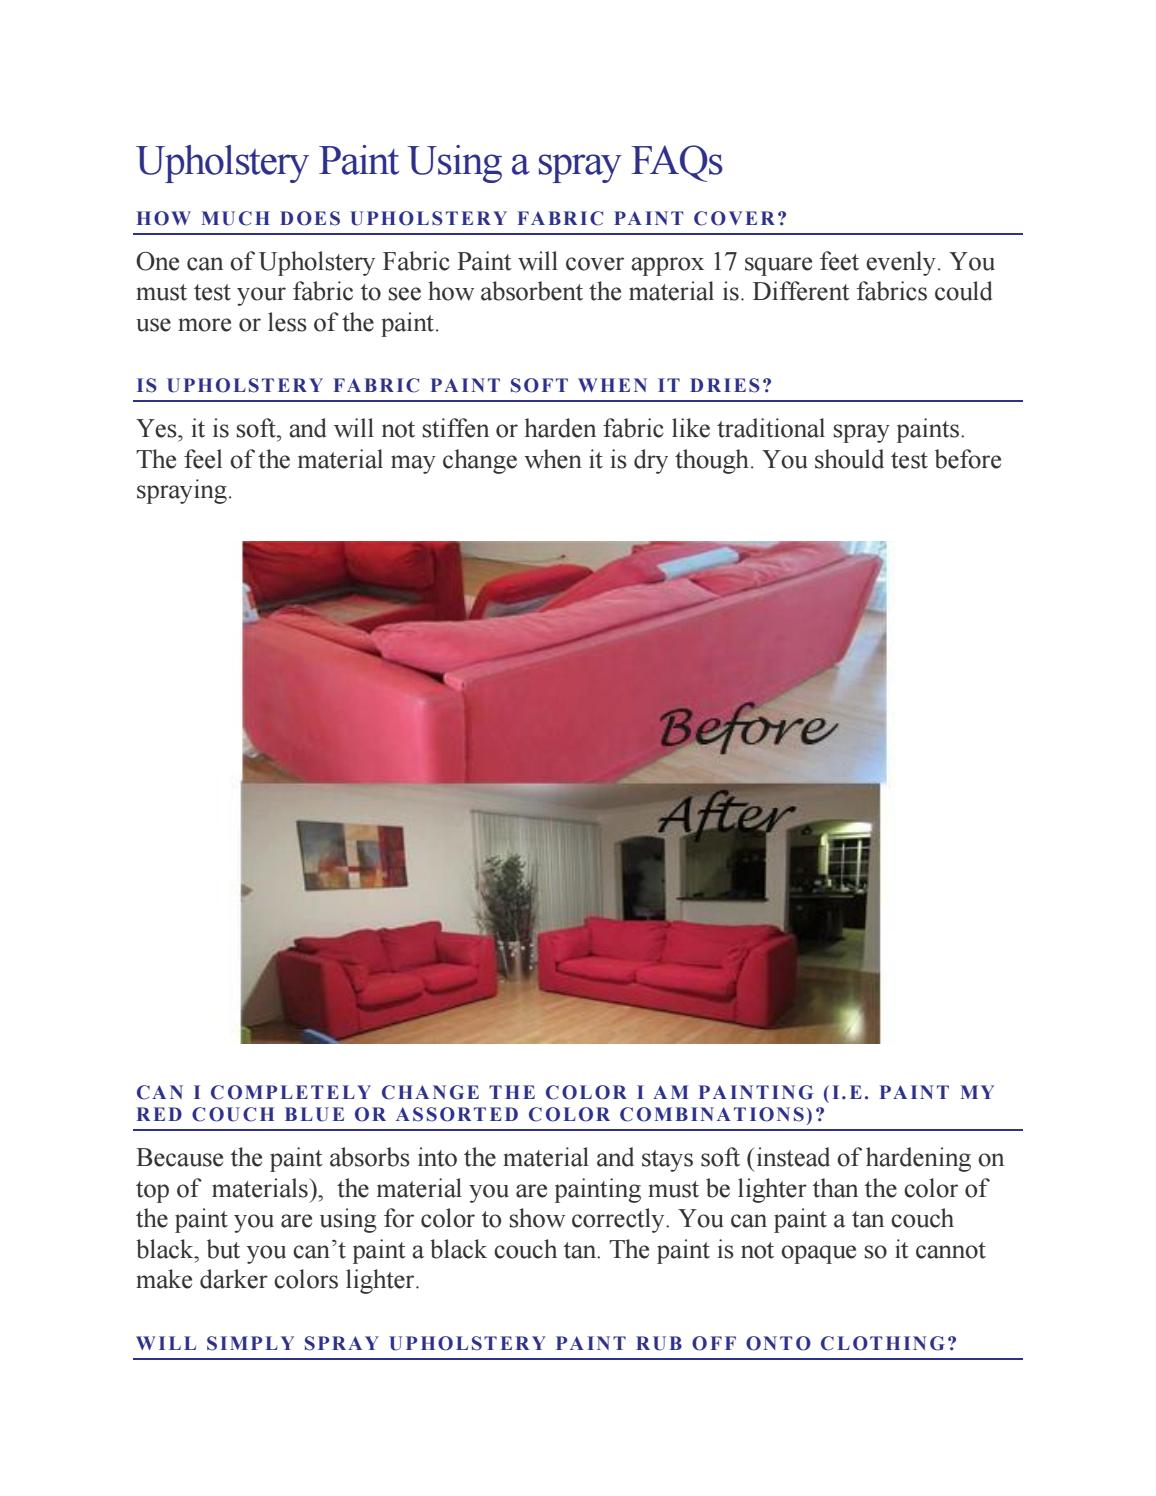 Upholstery paint using a spray faqs by Simply Spray - issuu